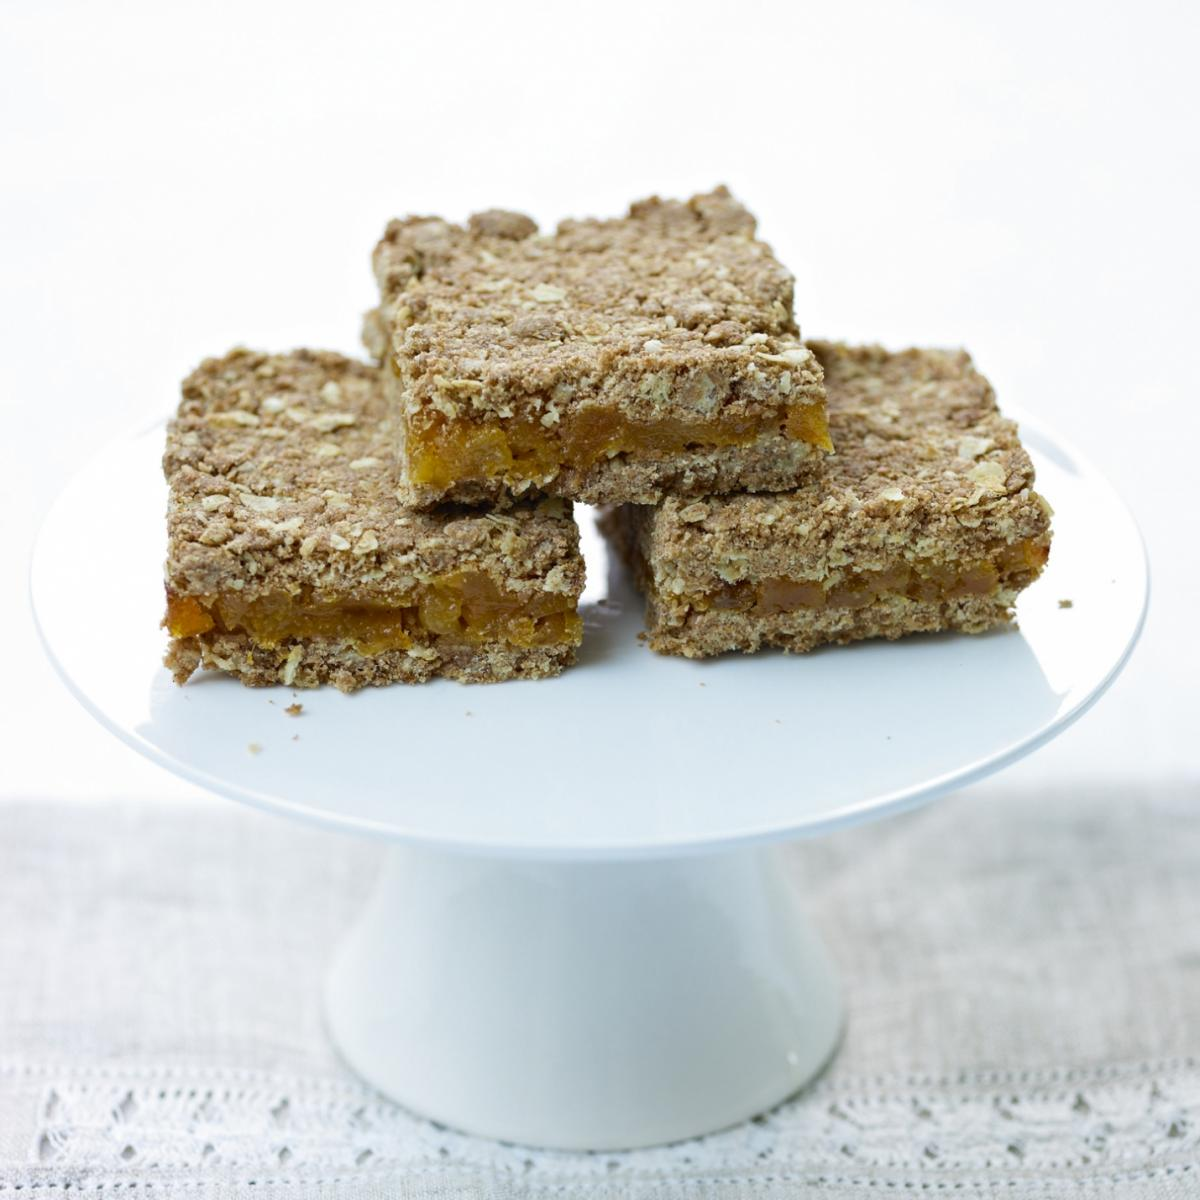 A picture of Delia's Apricot Oat Slices recipe